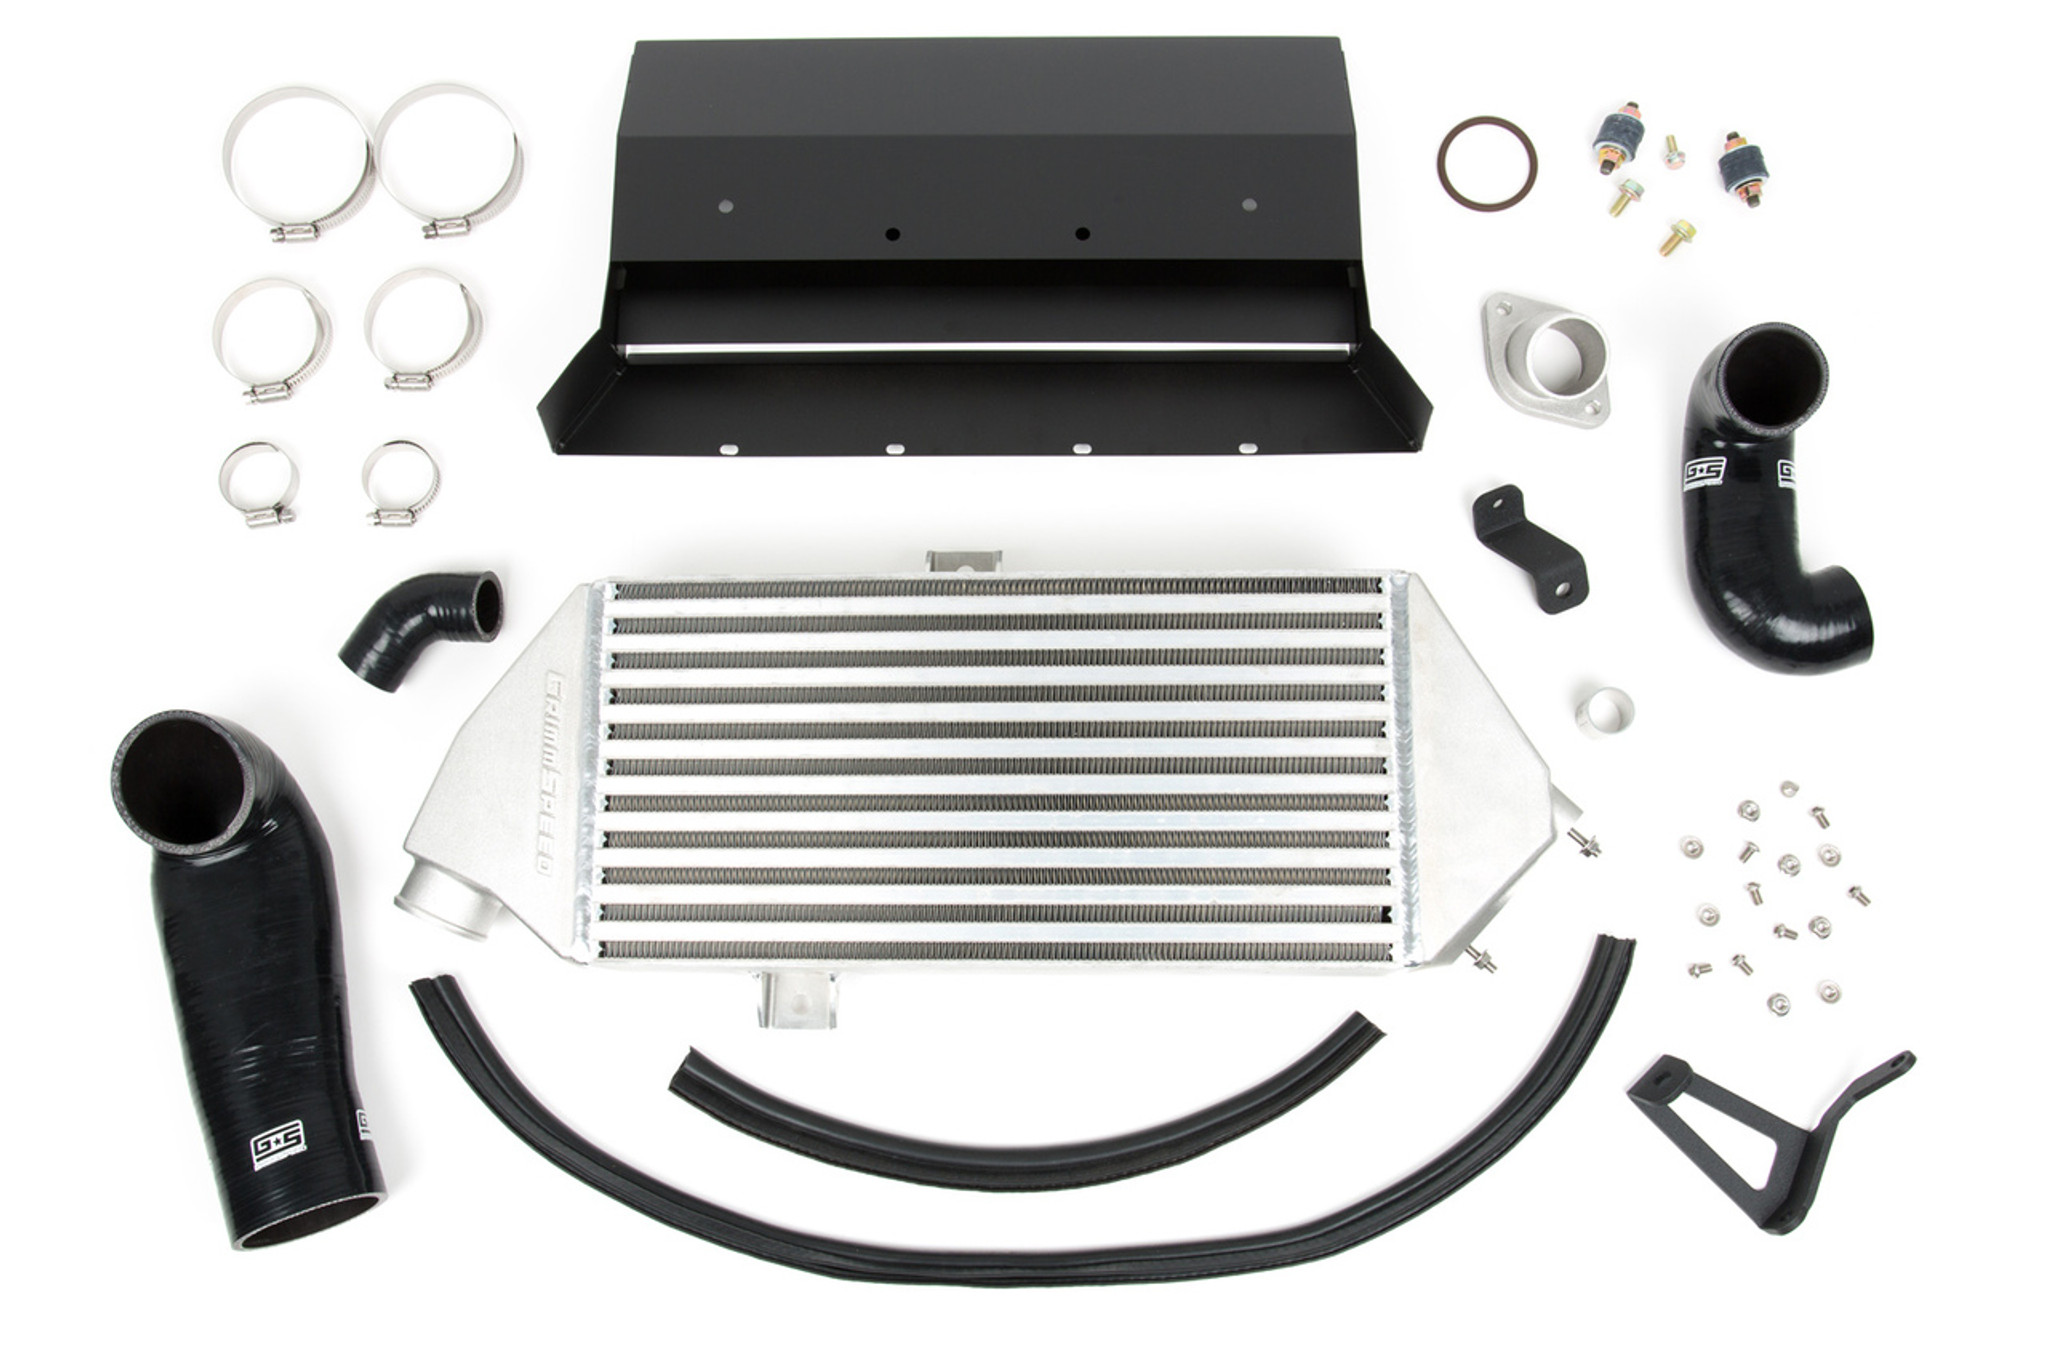 medium resolution of top mount intercooler kit subaru 08 14 wrx 05 09 legacy gt diagram of 05 subaru legacy gt engine